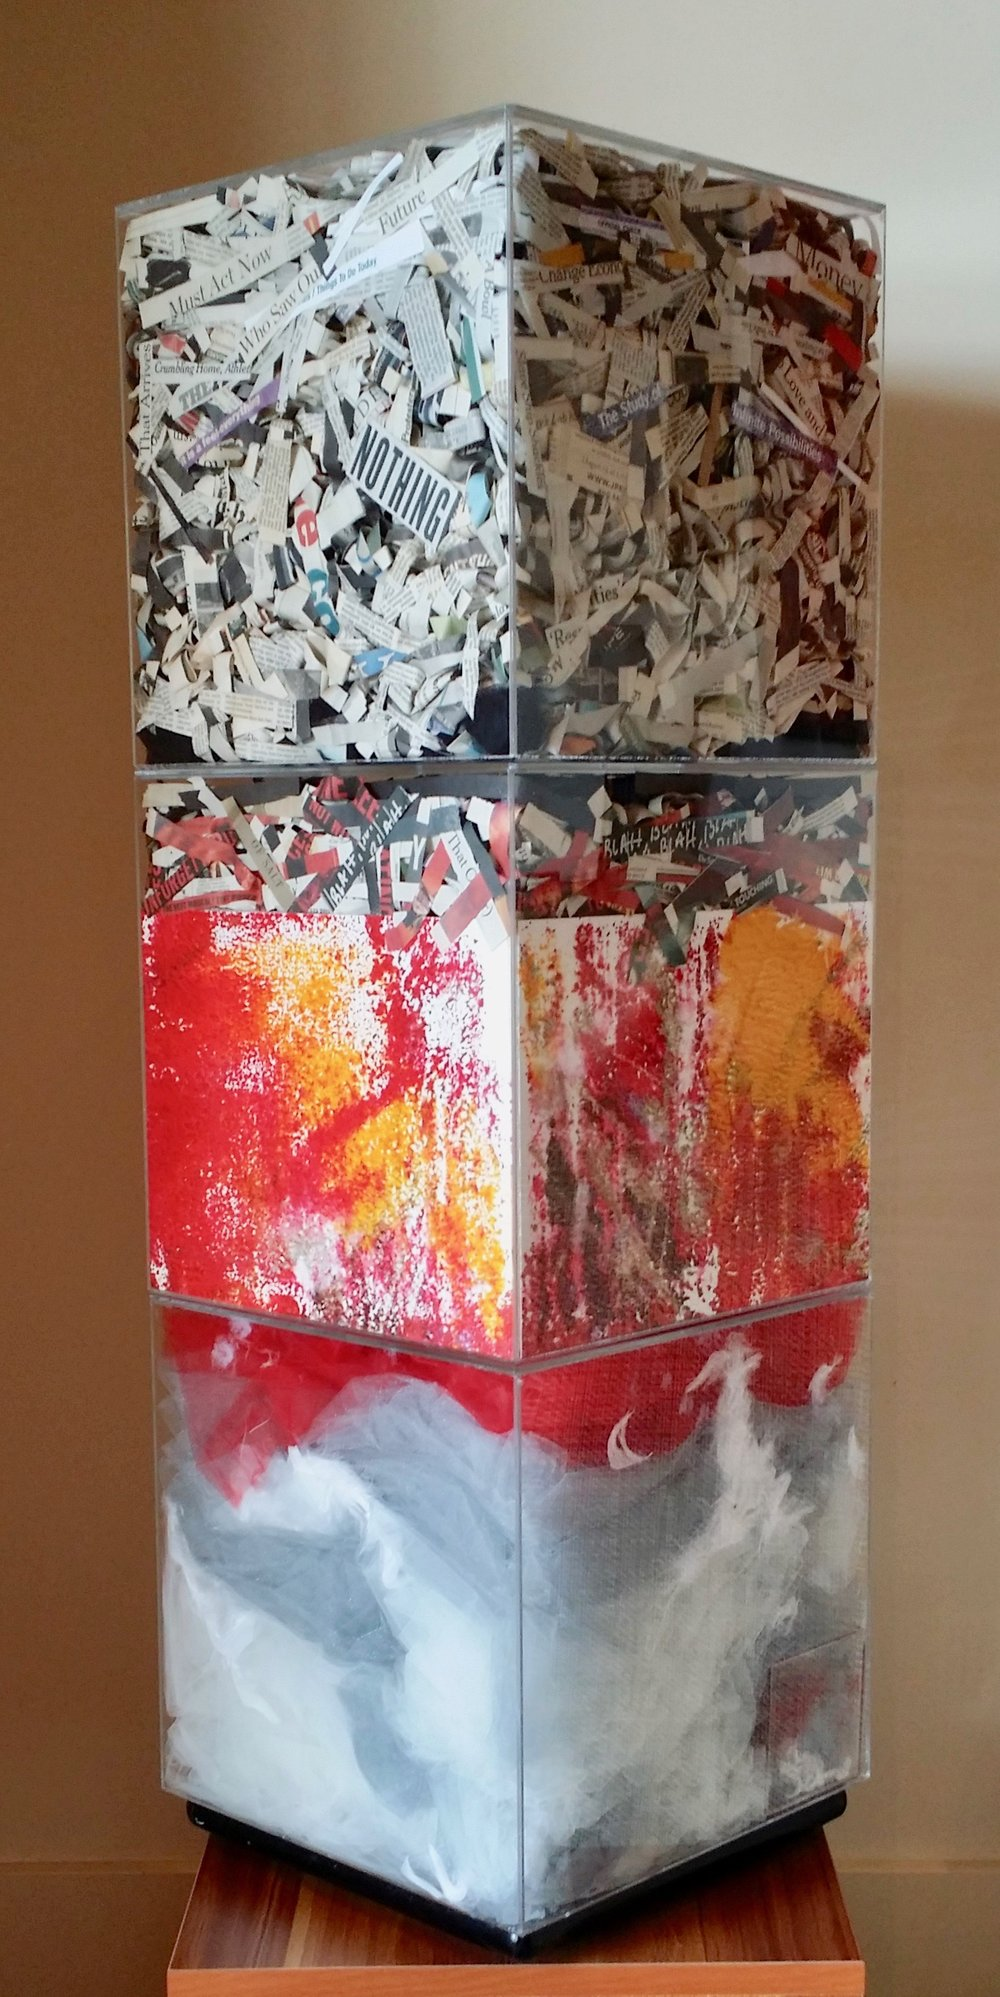 An Hypothesis, 2015  38 x 12.5 x 12.5 inches  Three acrylic cubes containing newspaper clippings, paintings, fabric